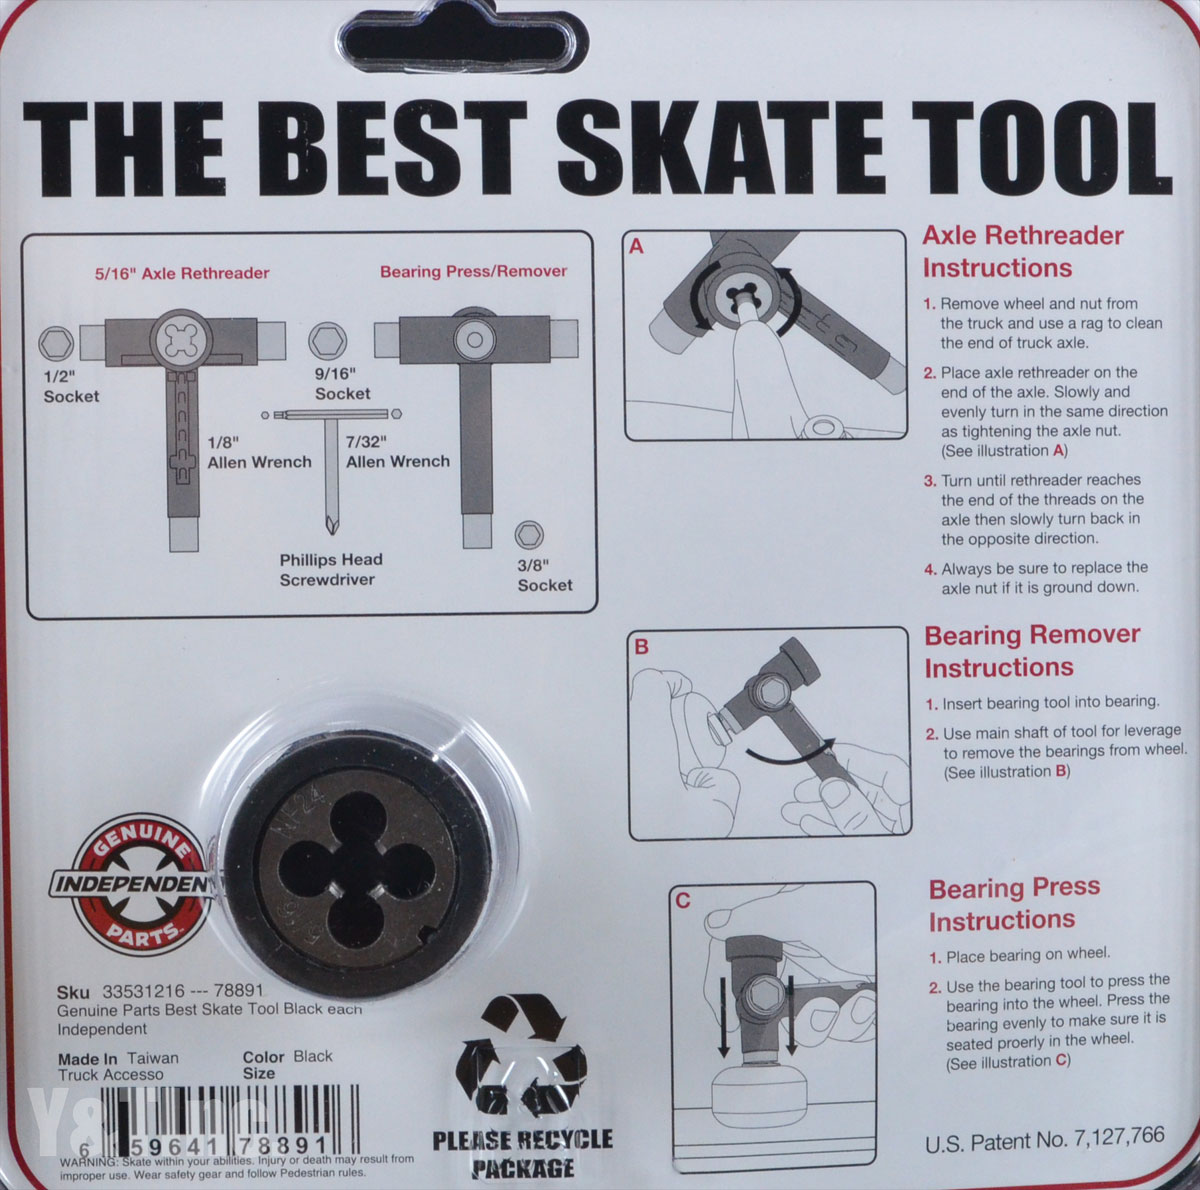 INDEPENDENT BEST SKATE TOOL BLACK 3